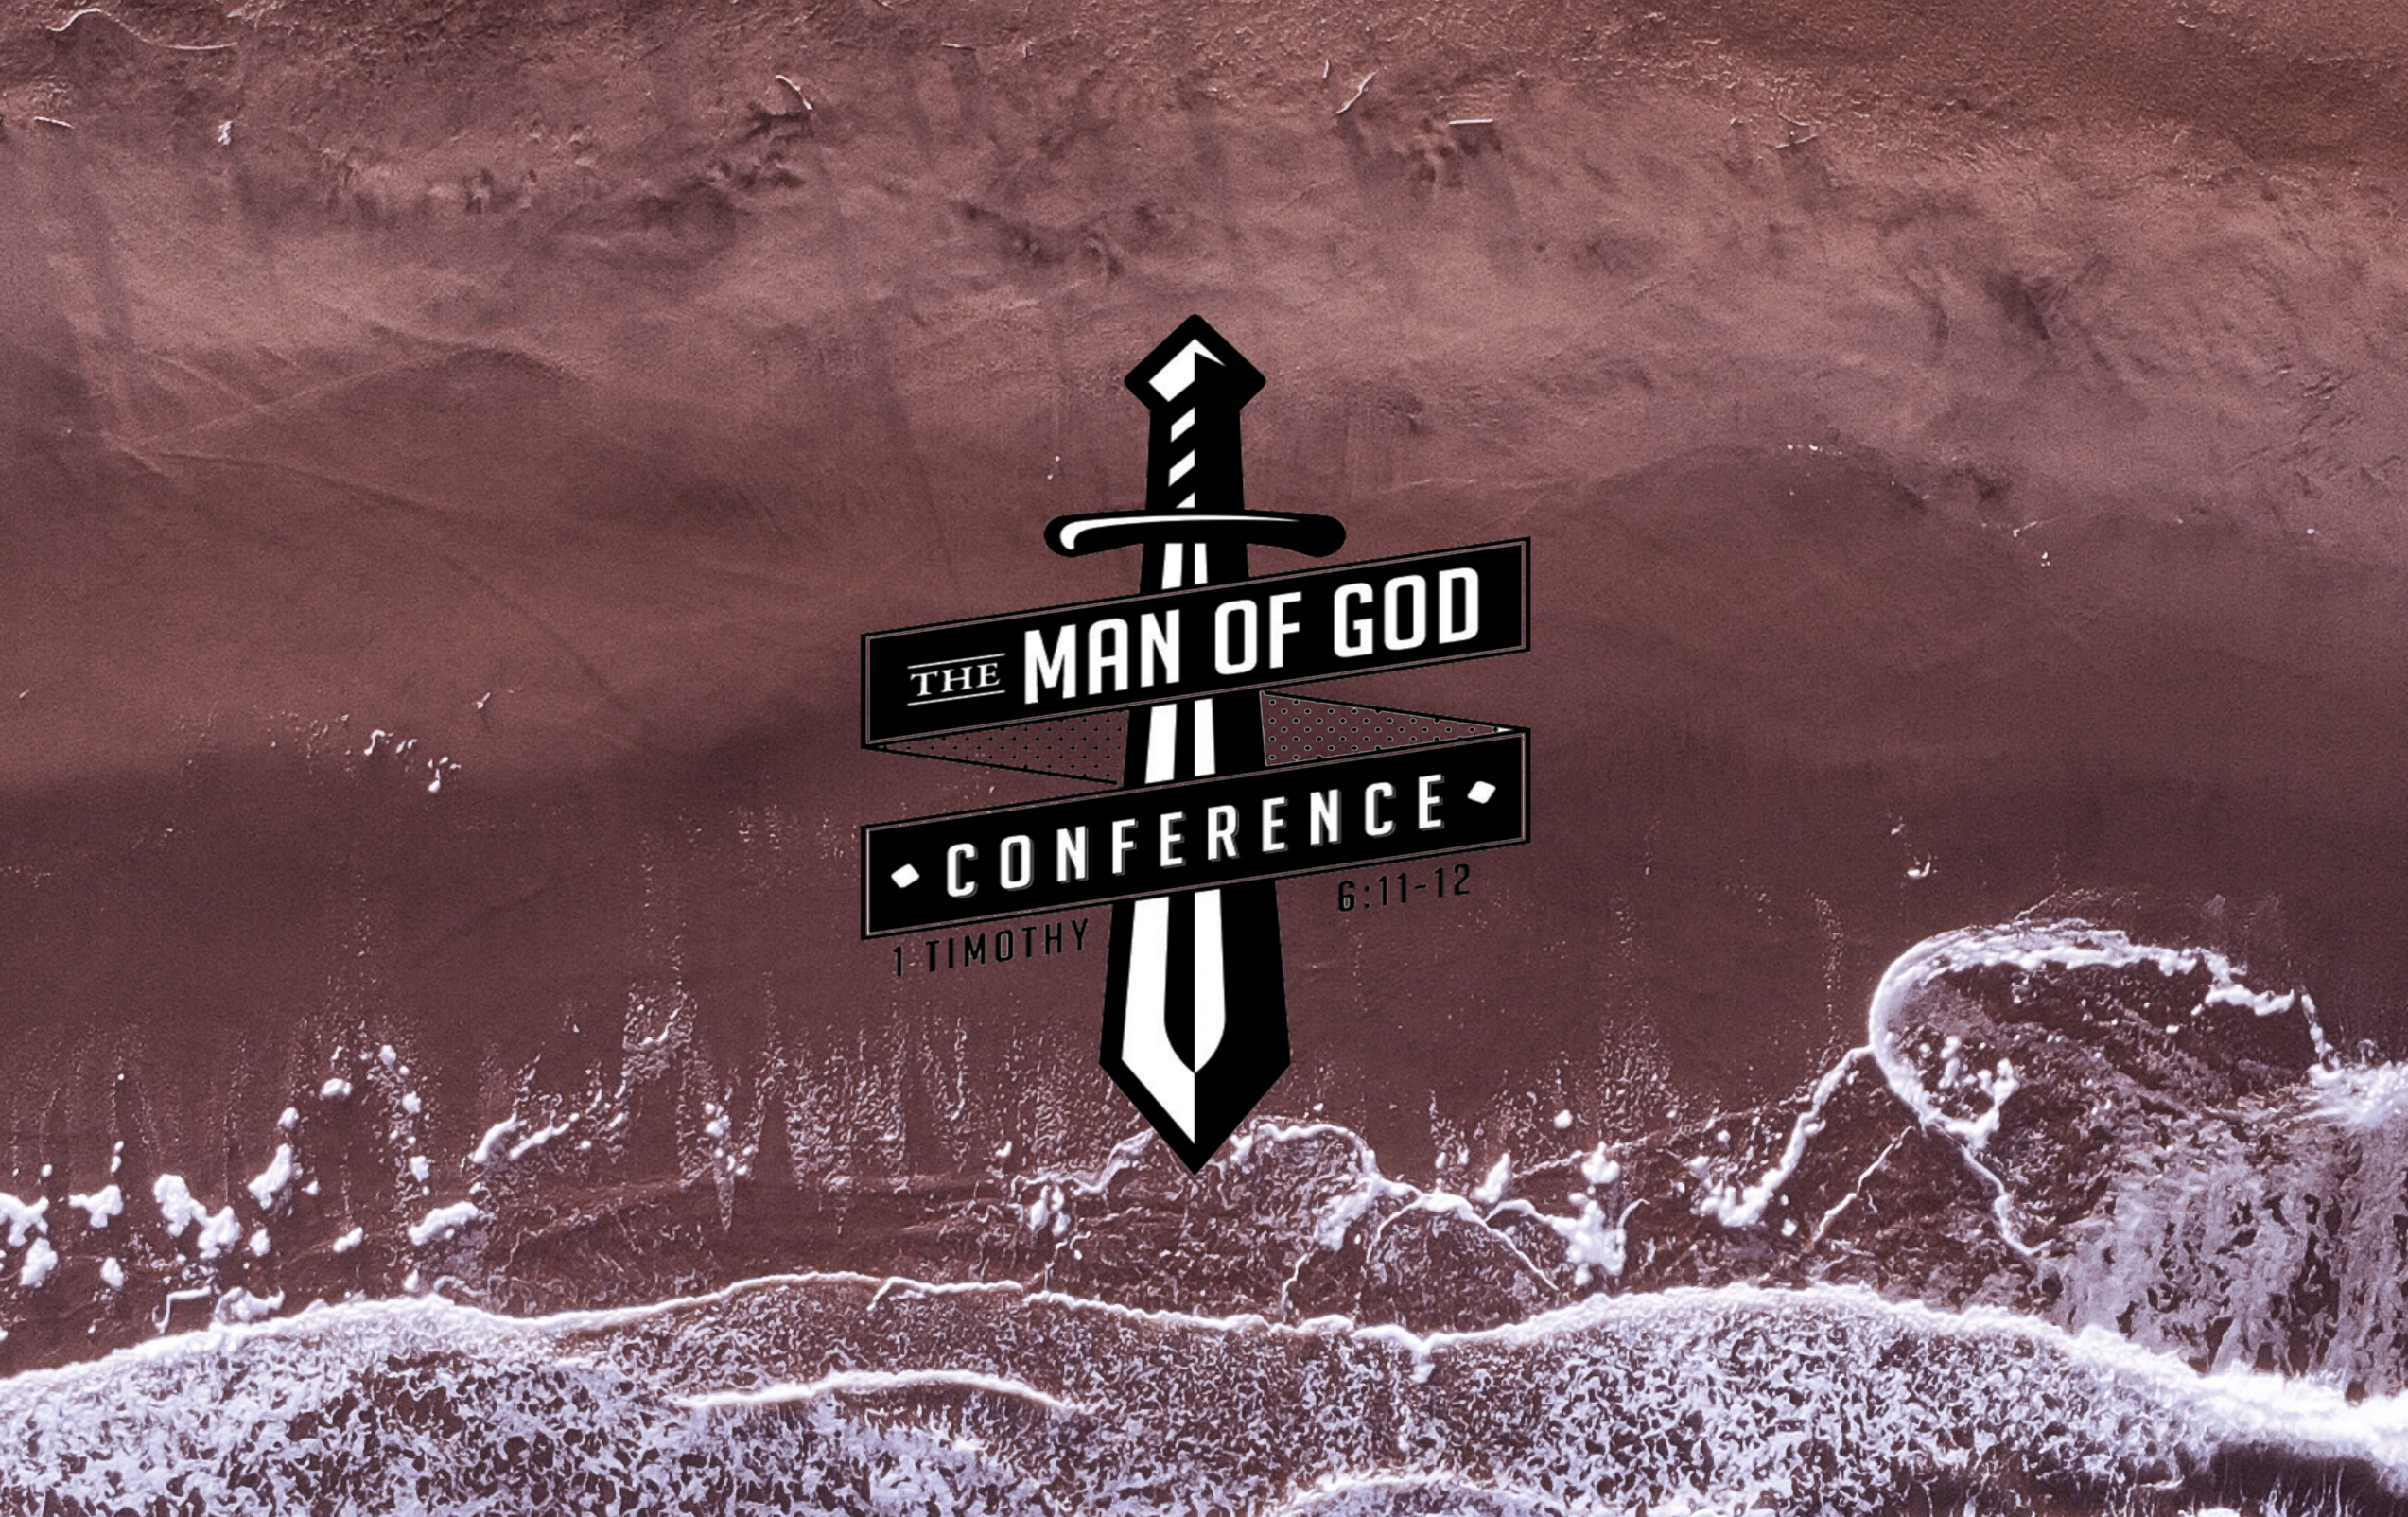 Man of God Conference 2020 image